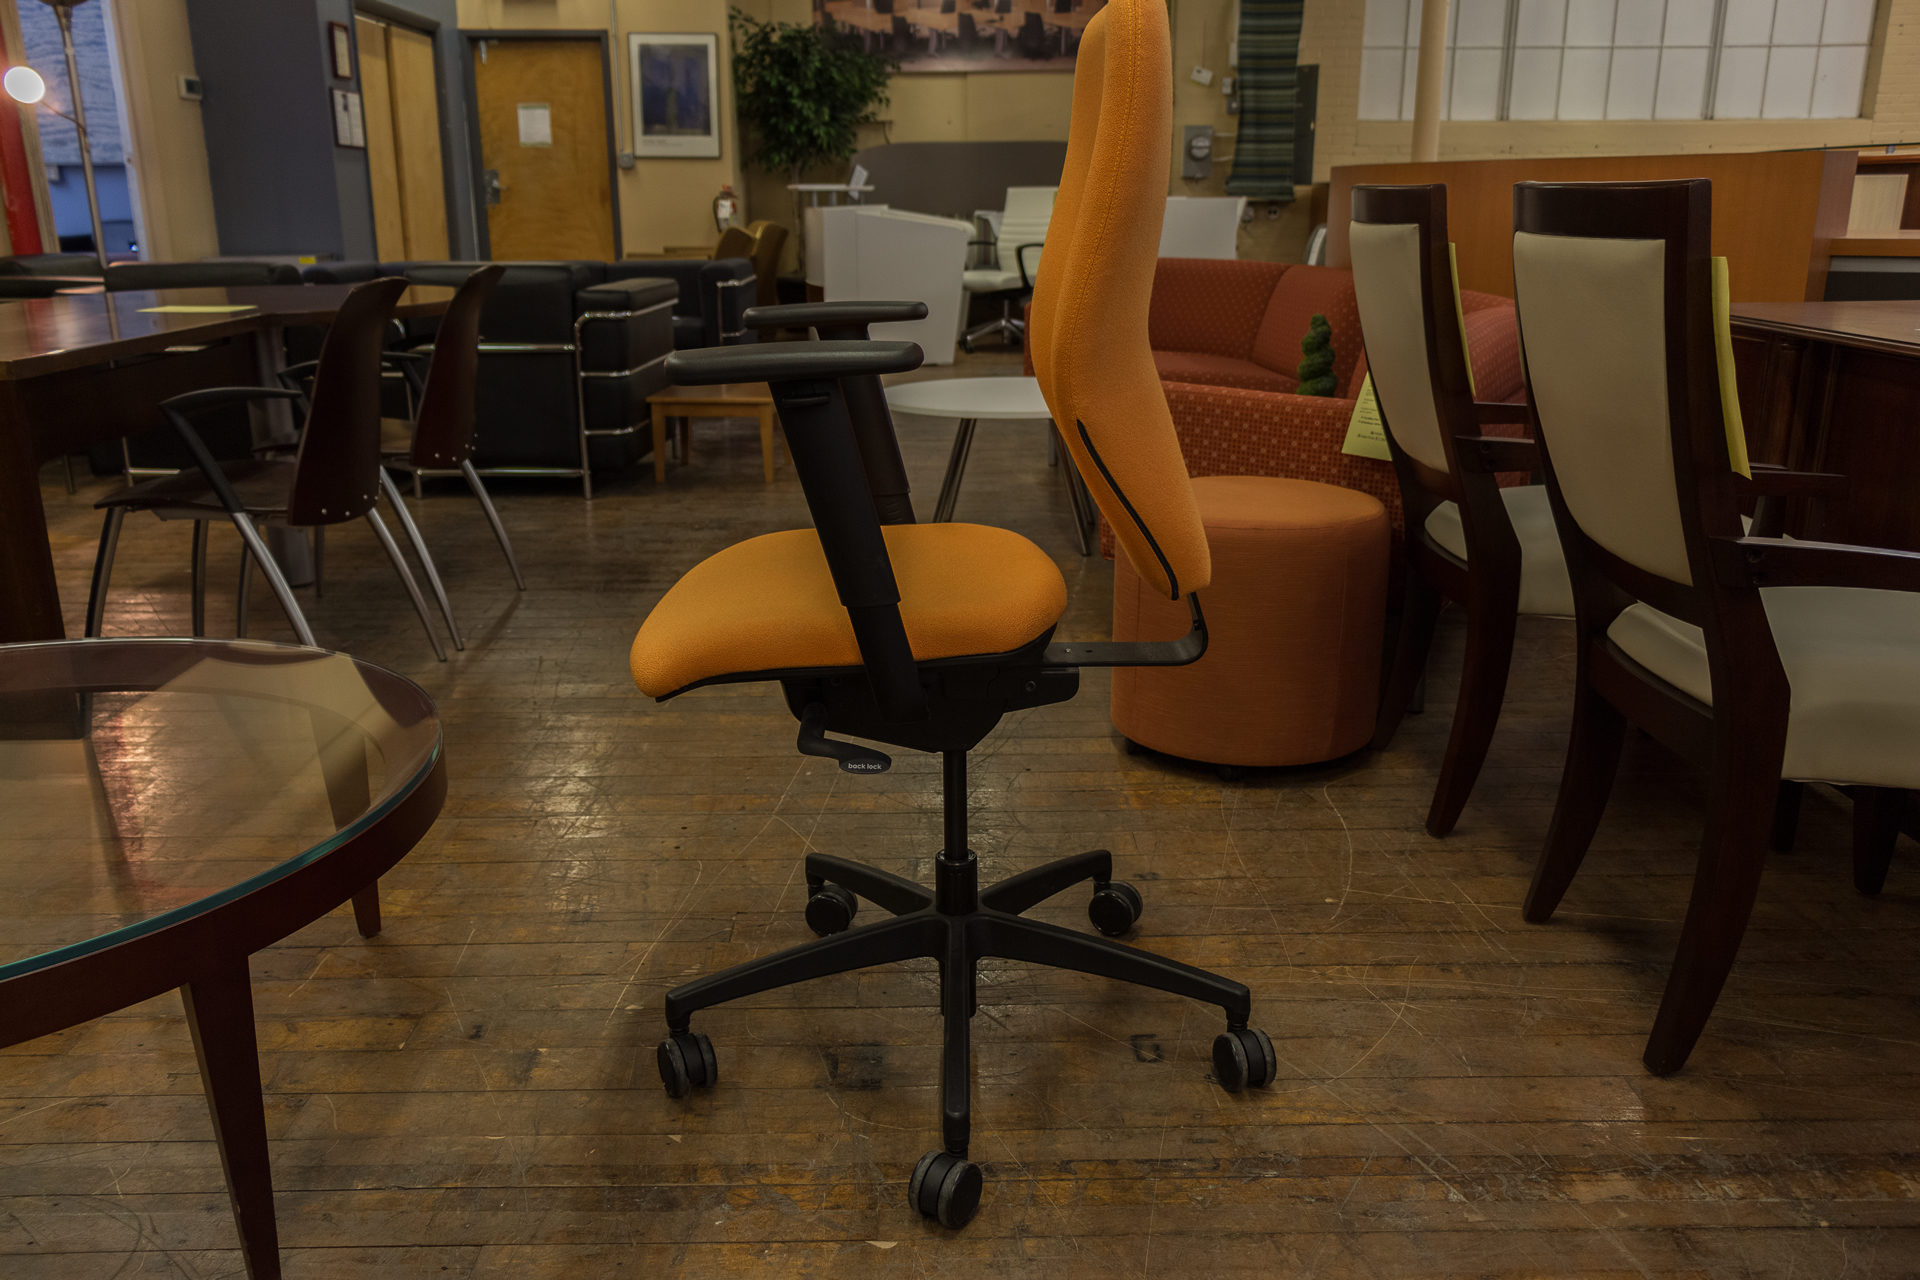 peartreeofficefurniture_peartreeofficefurniture_peartreeofficefurniture_boss-design-multi-function-task-chairs-in-red-blue-and-orange-7.jpg